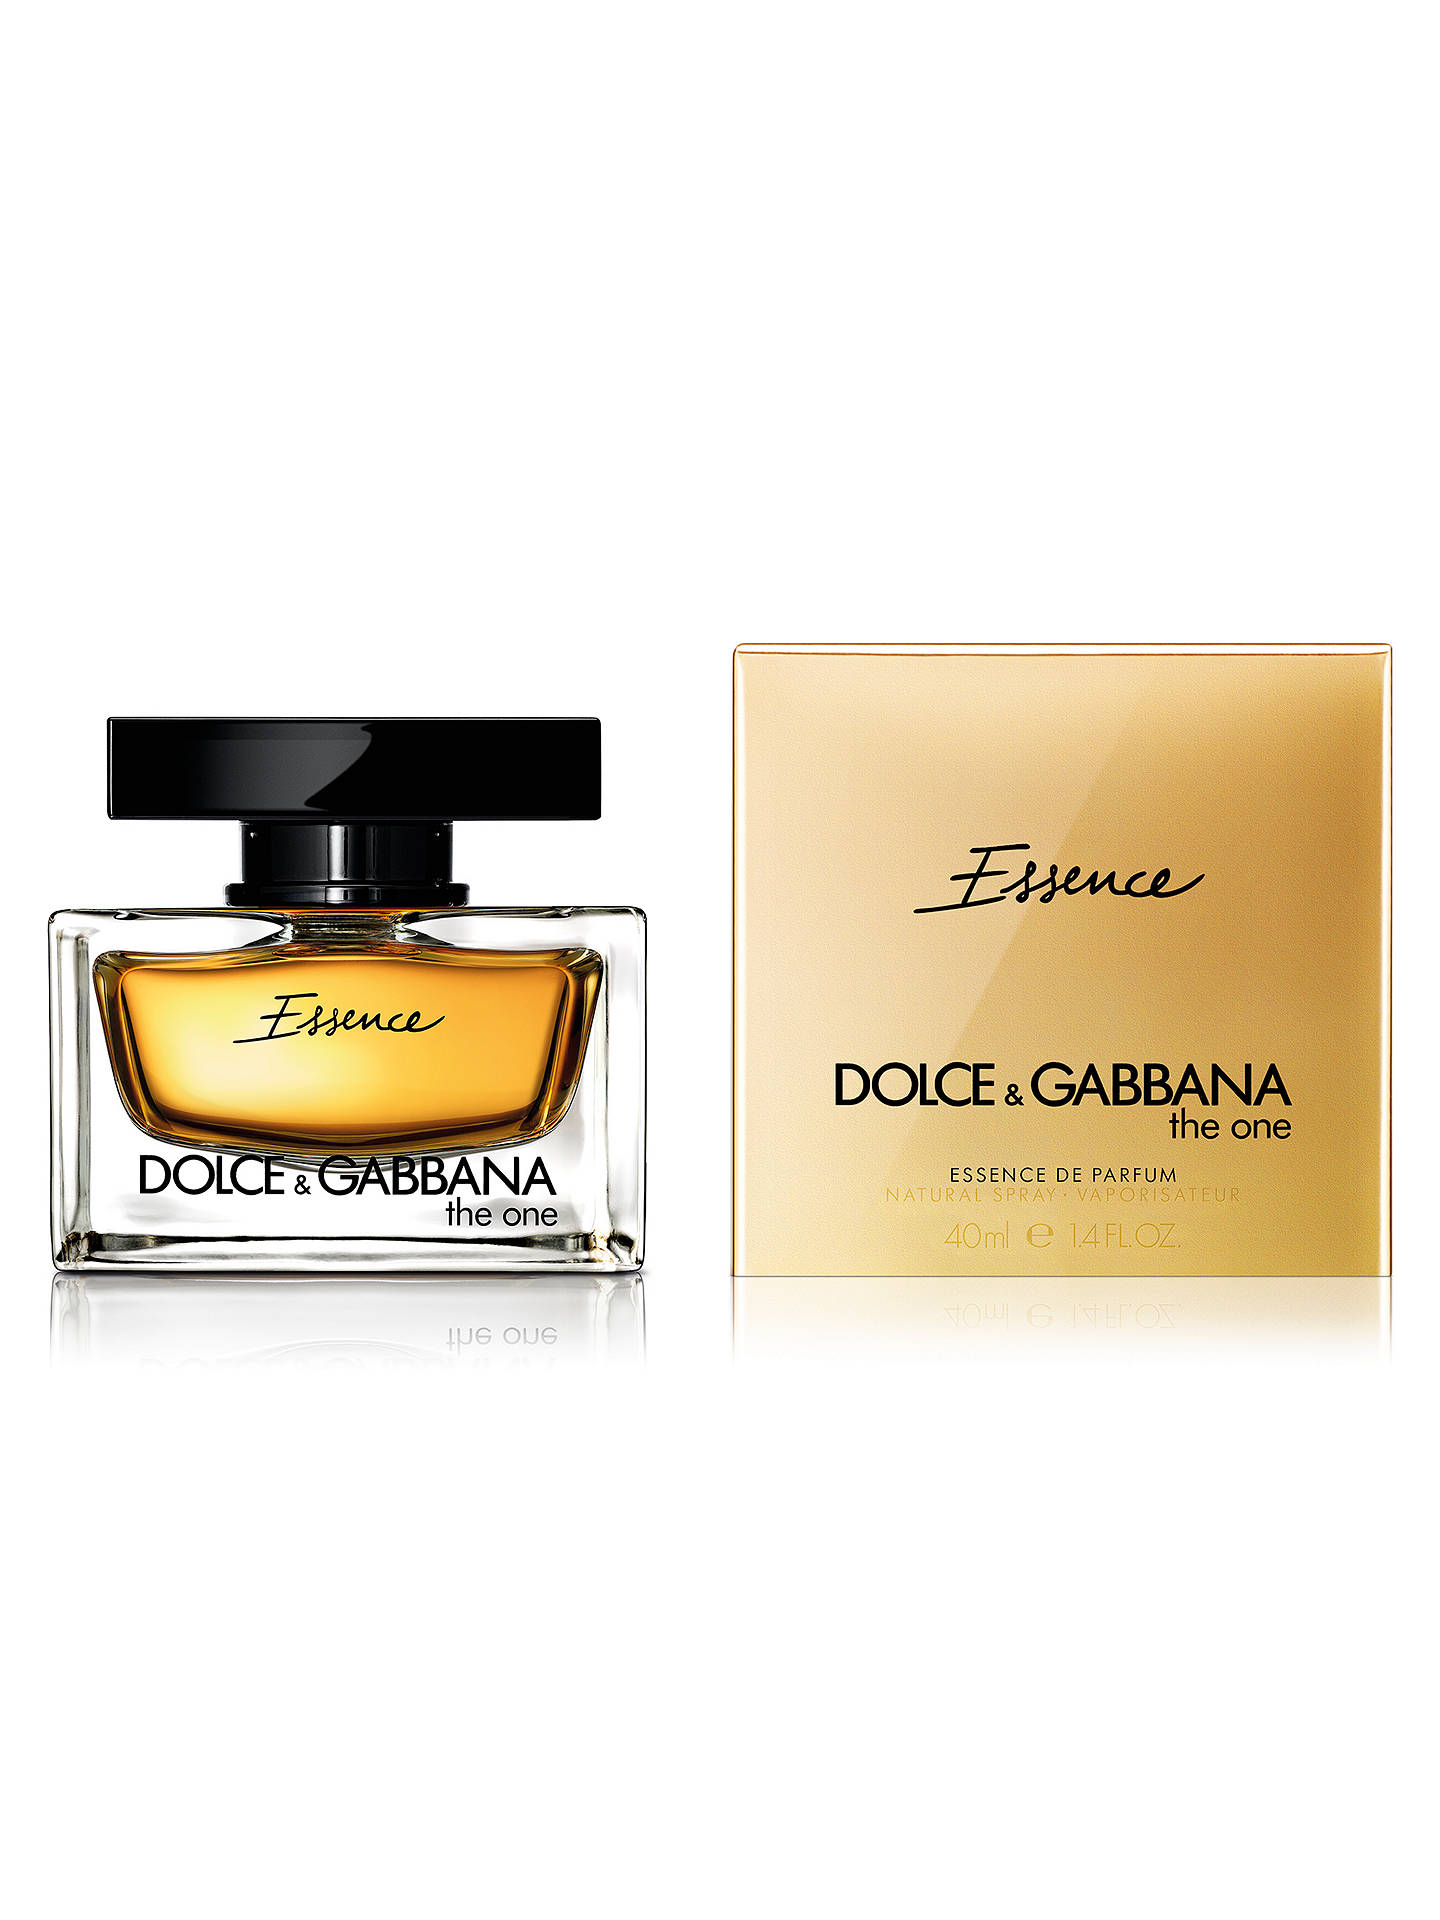 BuyDolce & Gabbana The One Essence Eau de Parfum, 40ml Online at johnlewis.com